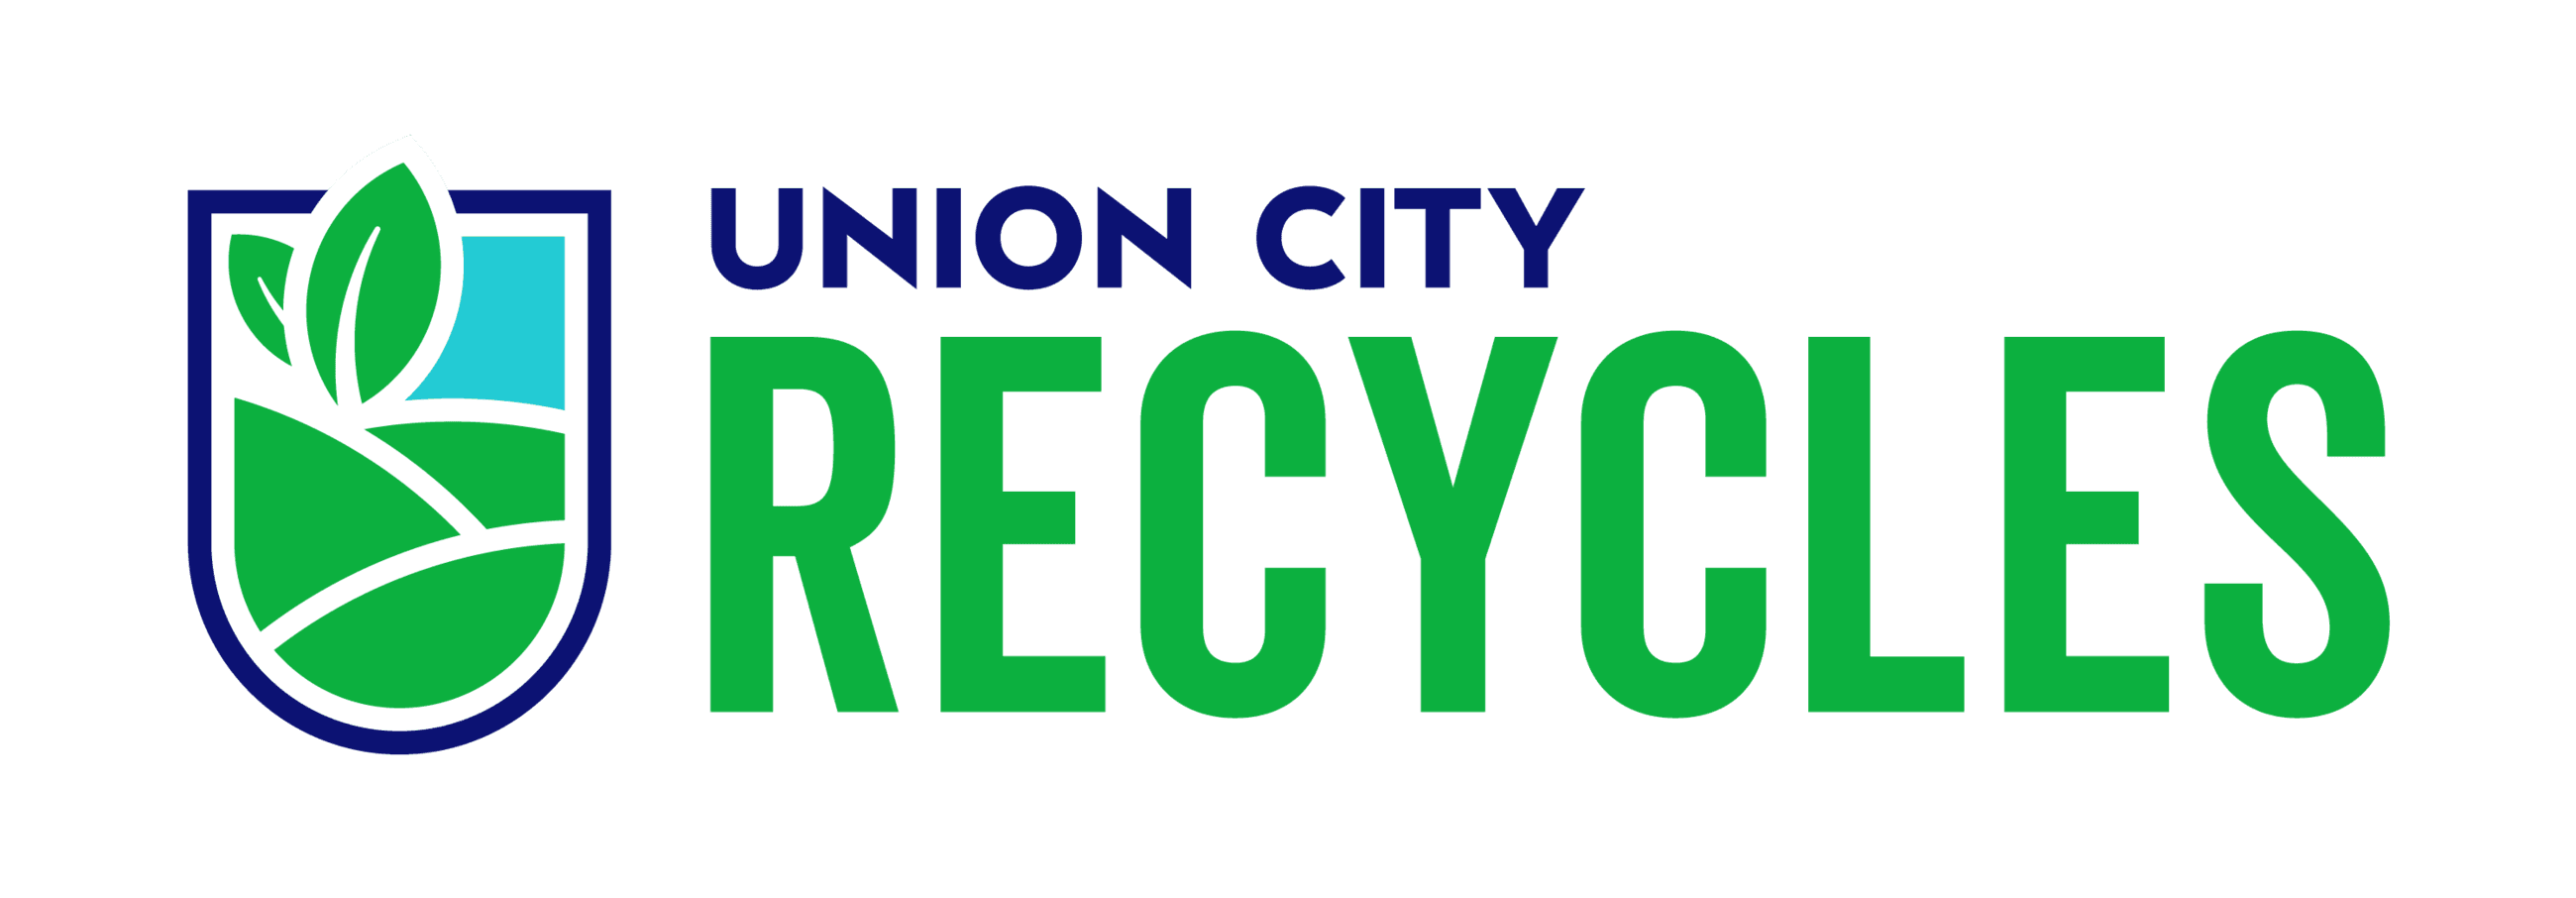 Union City Recycles Logo